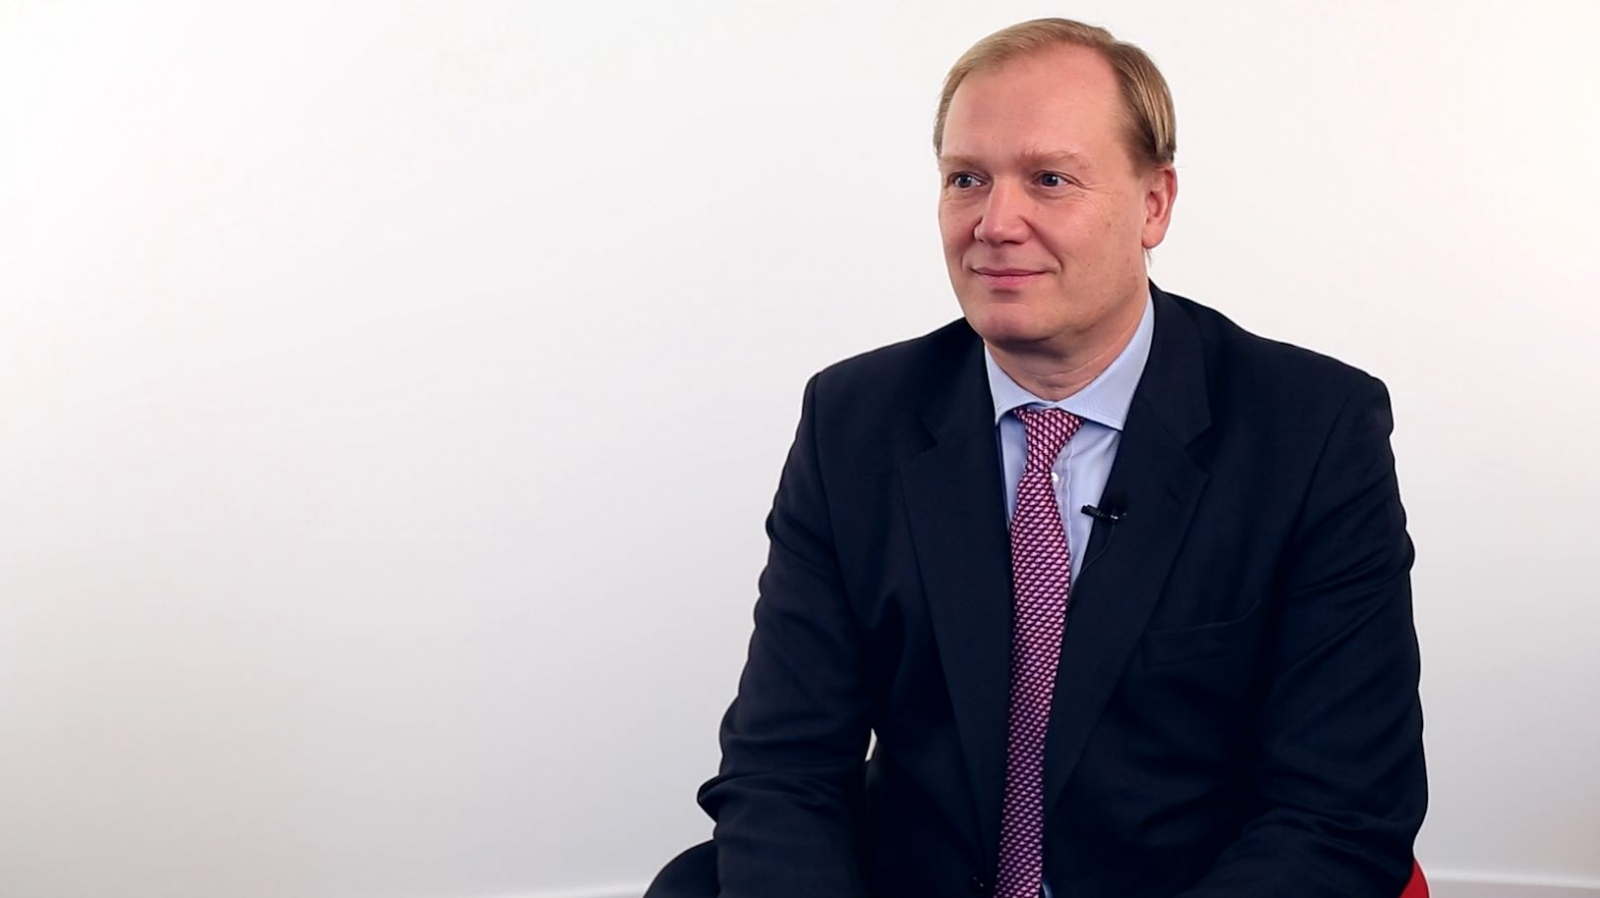 Trade Finance Partners: TTIP and less regulation will boost best of British business